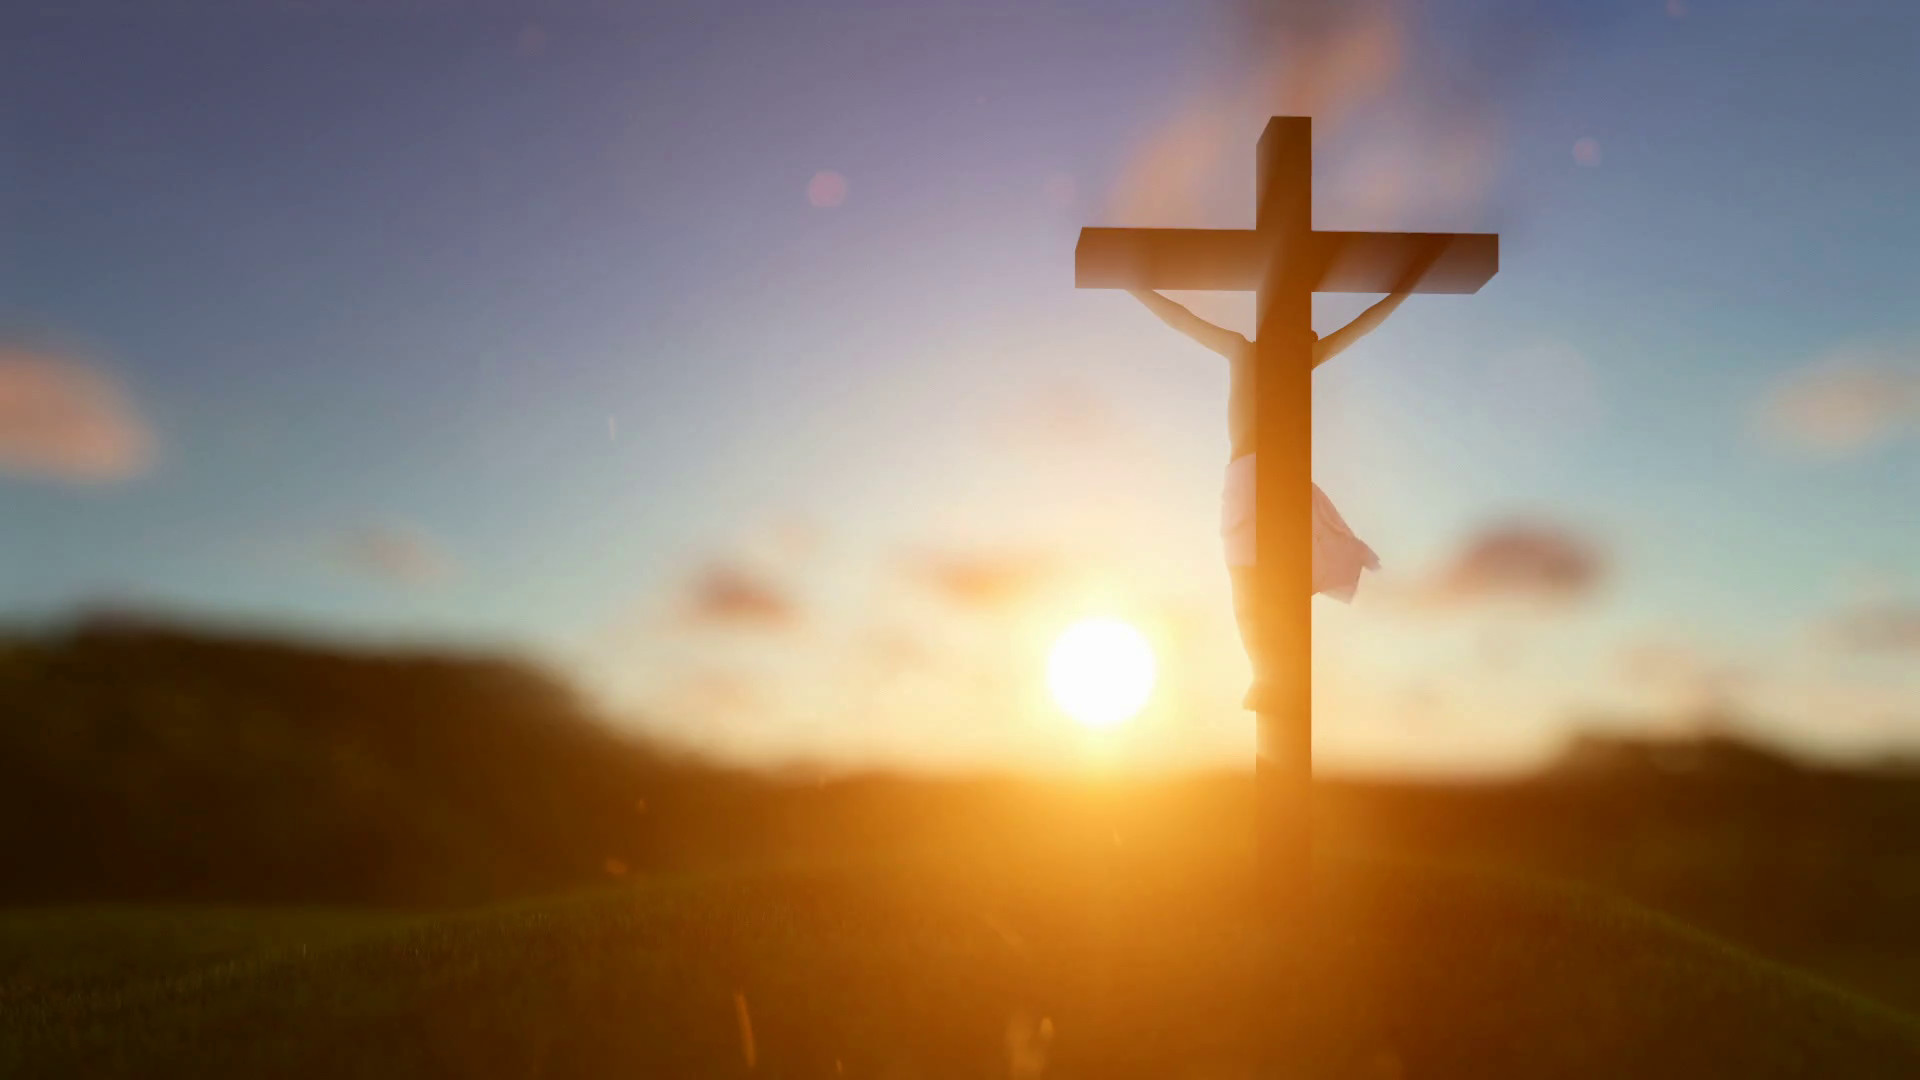 Wallpapers For > Christian Cross Wallpaper Hd 1080p